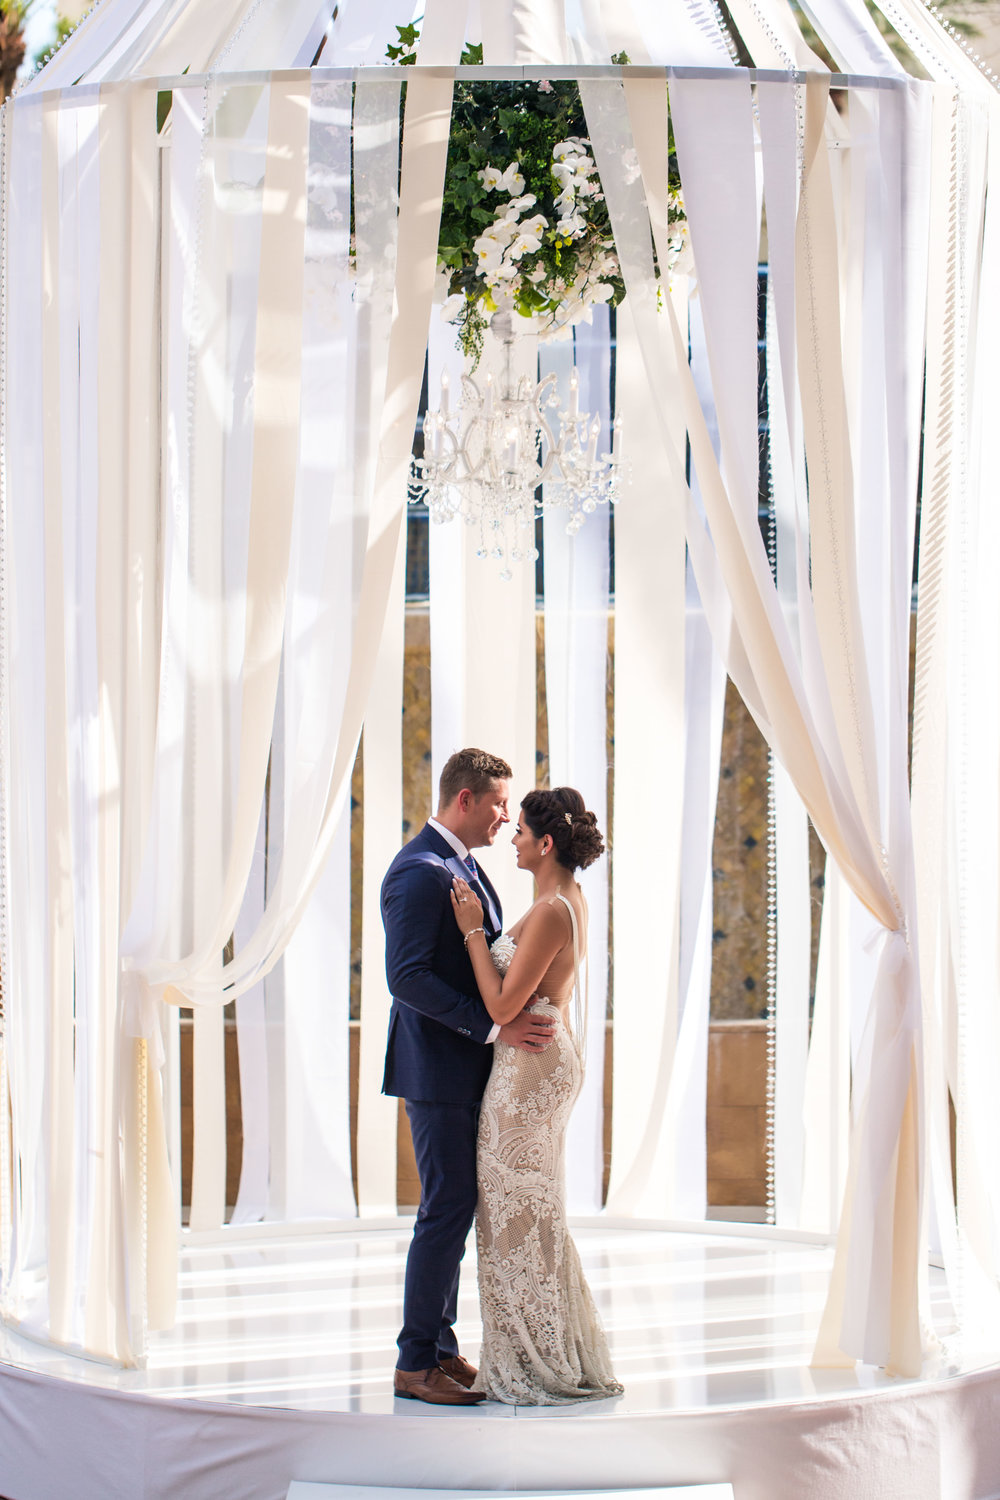 Bride and groom in birdcage under floral chandelier. Wedding Planning by  Andrea Eppolito Events   ·  Photography by  Shandro Photo    ·  Wedding Venue  Four Seasons Las Vegas   ·  Floral and Decor by  Destination by Design   ·  Cake by  Four Seasons Las Vegas   ·  Chandeliers and Lighting by  LED Unplugged   ·  Dress by  Berta